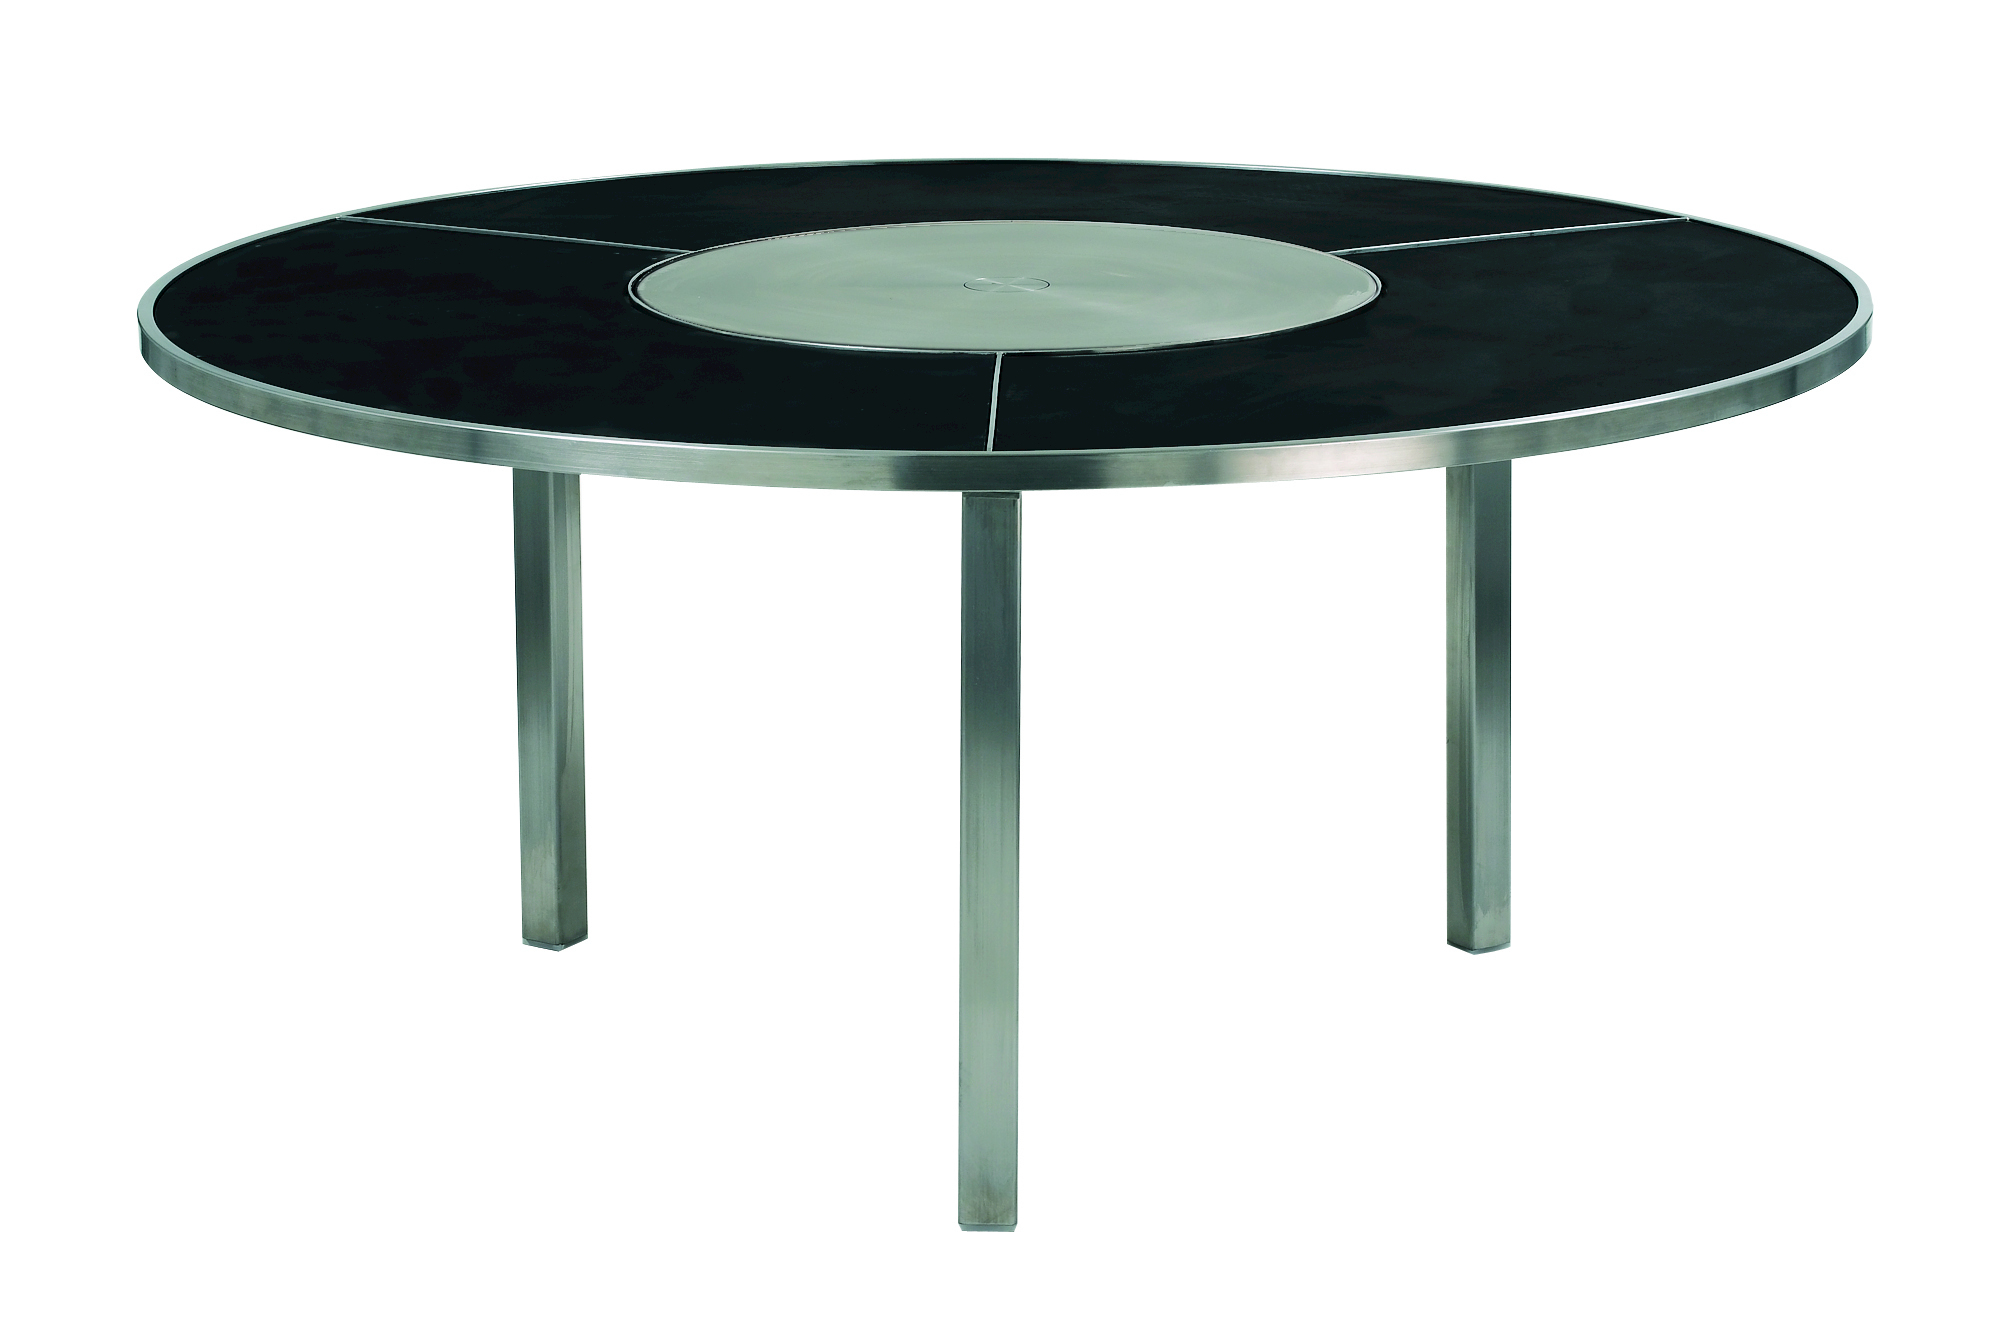 Tables with Lazy Susan